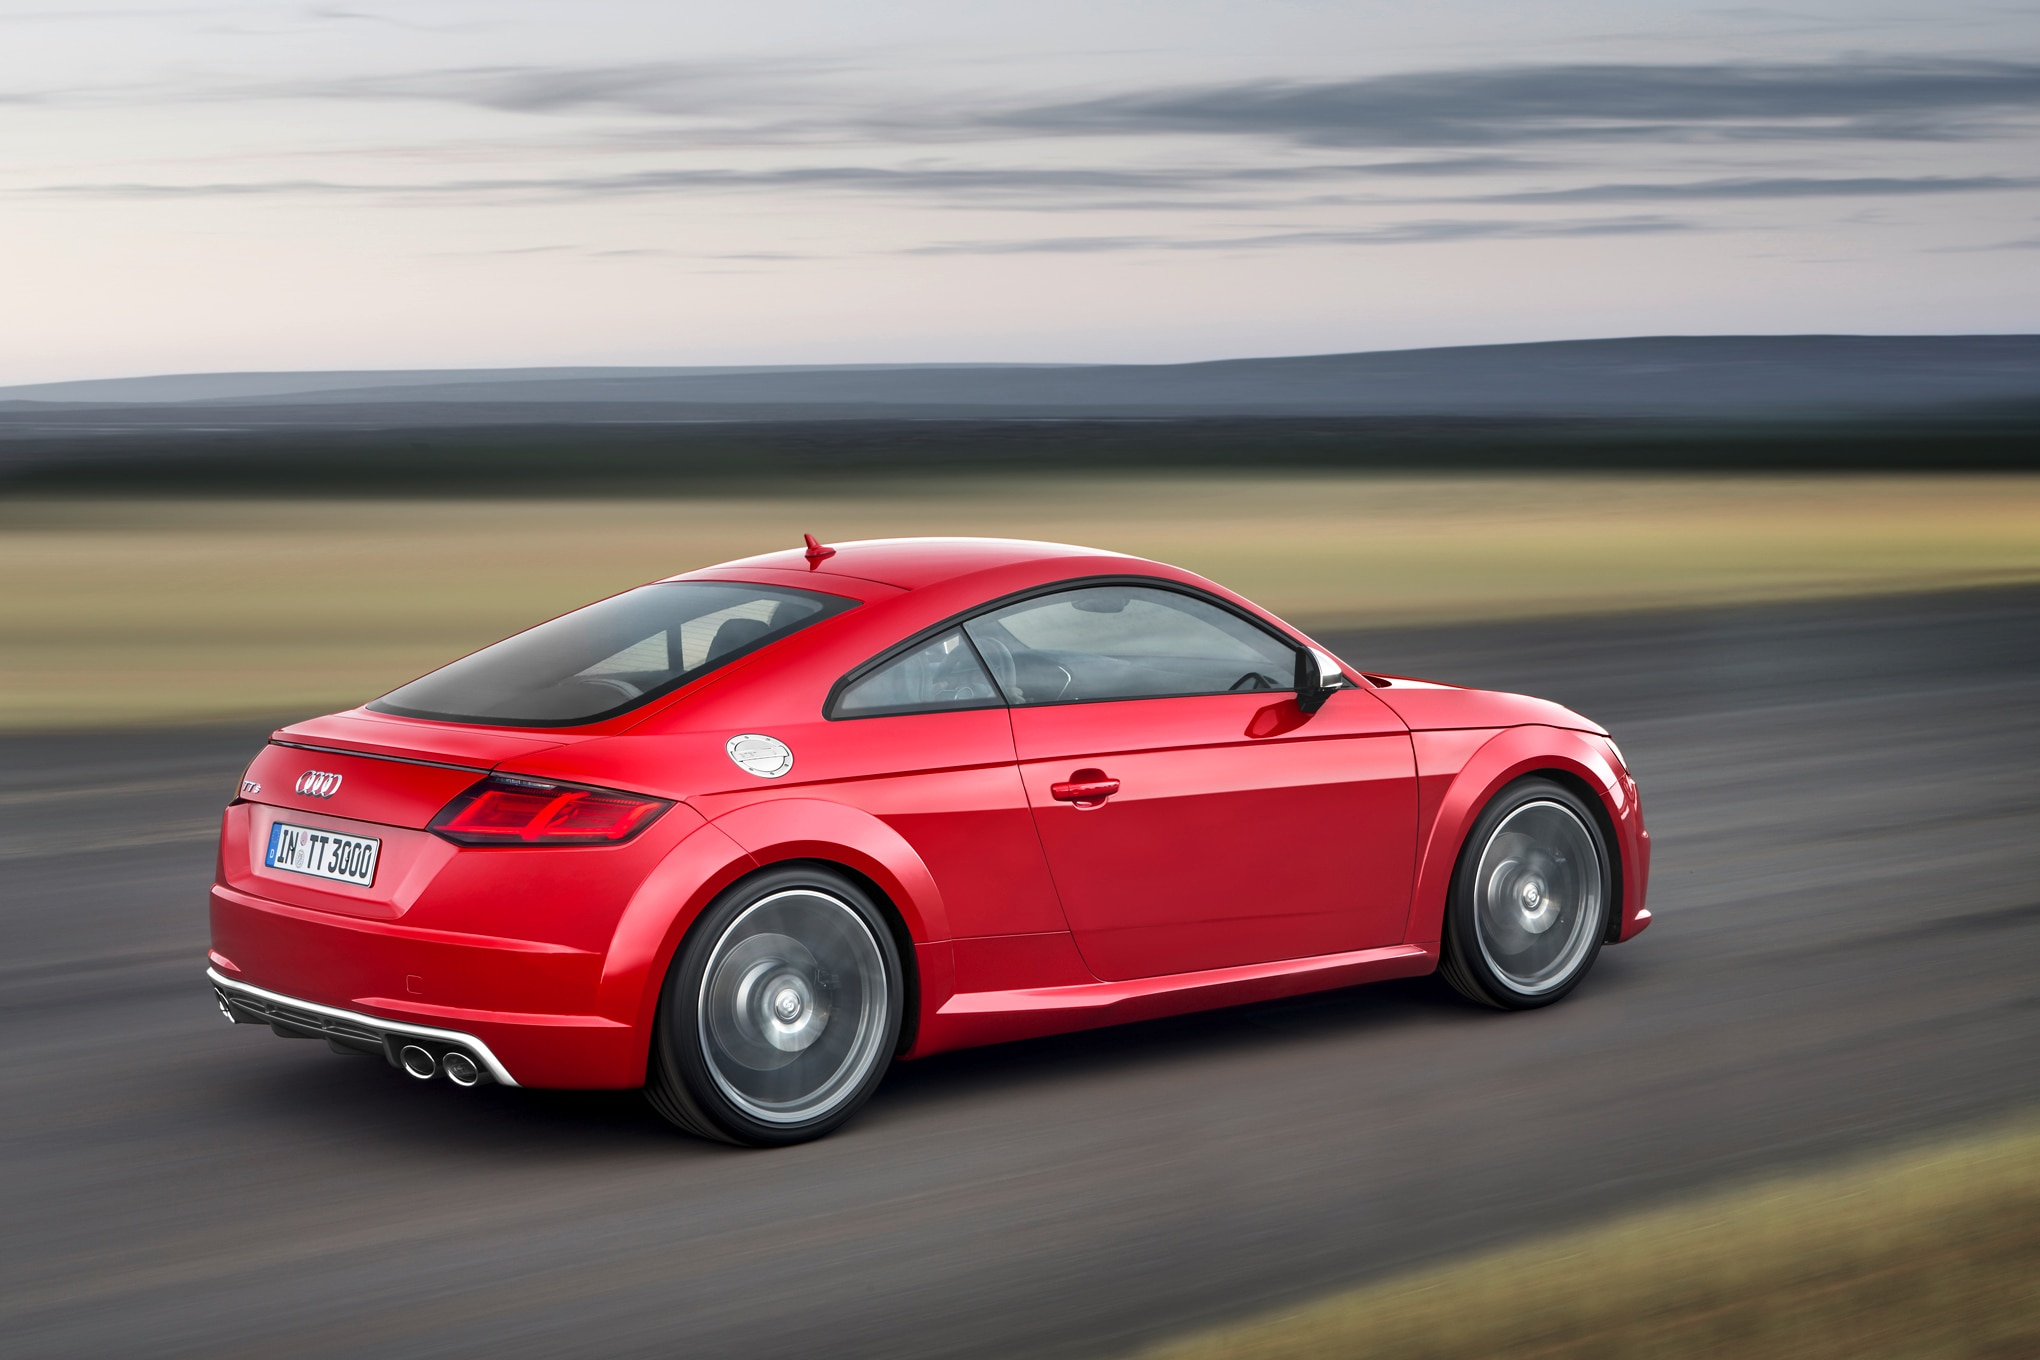 2016 Audi TT and TTS Roadster Headed for Paris Auto Show